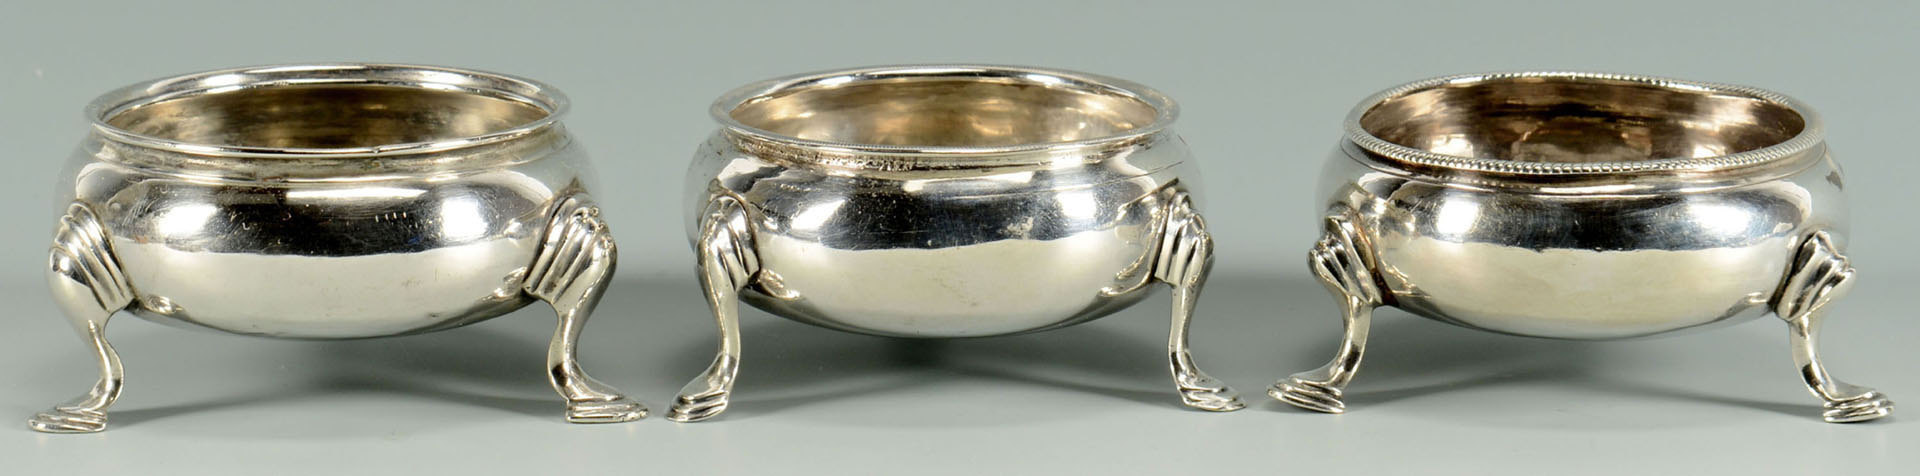 Lot 303: 5 English Silver Salts